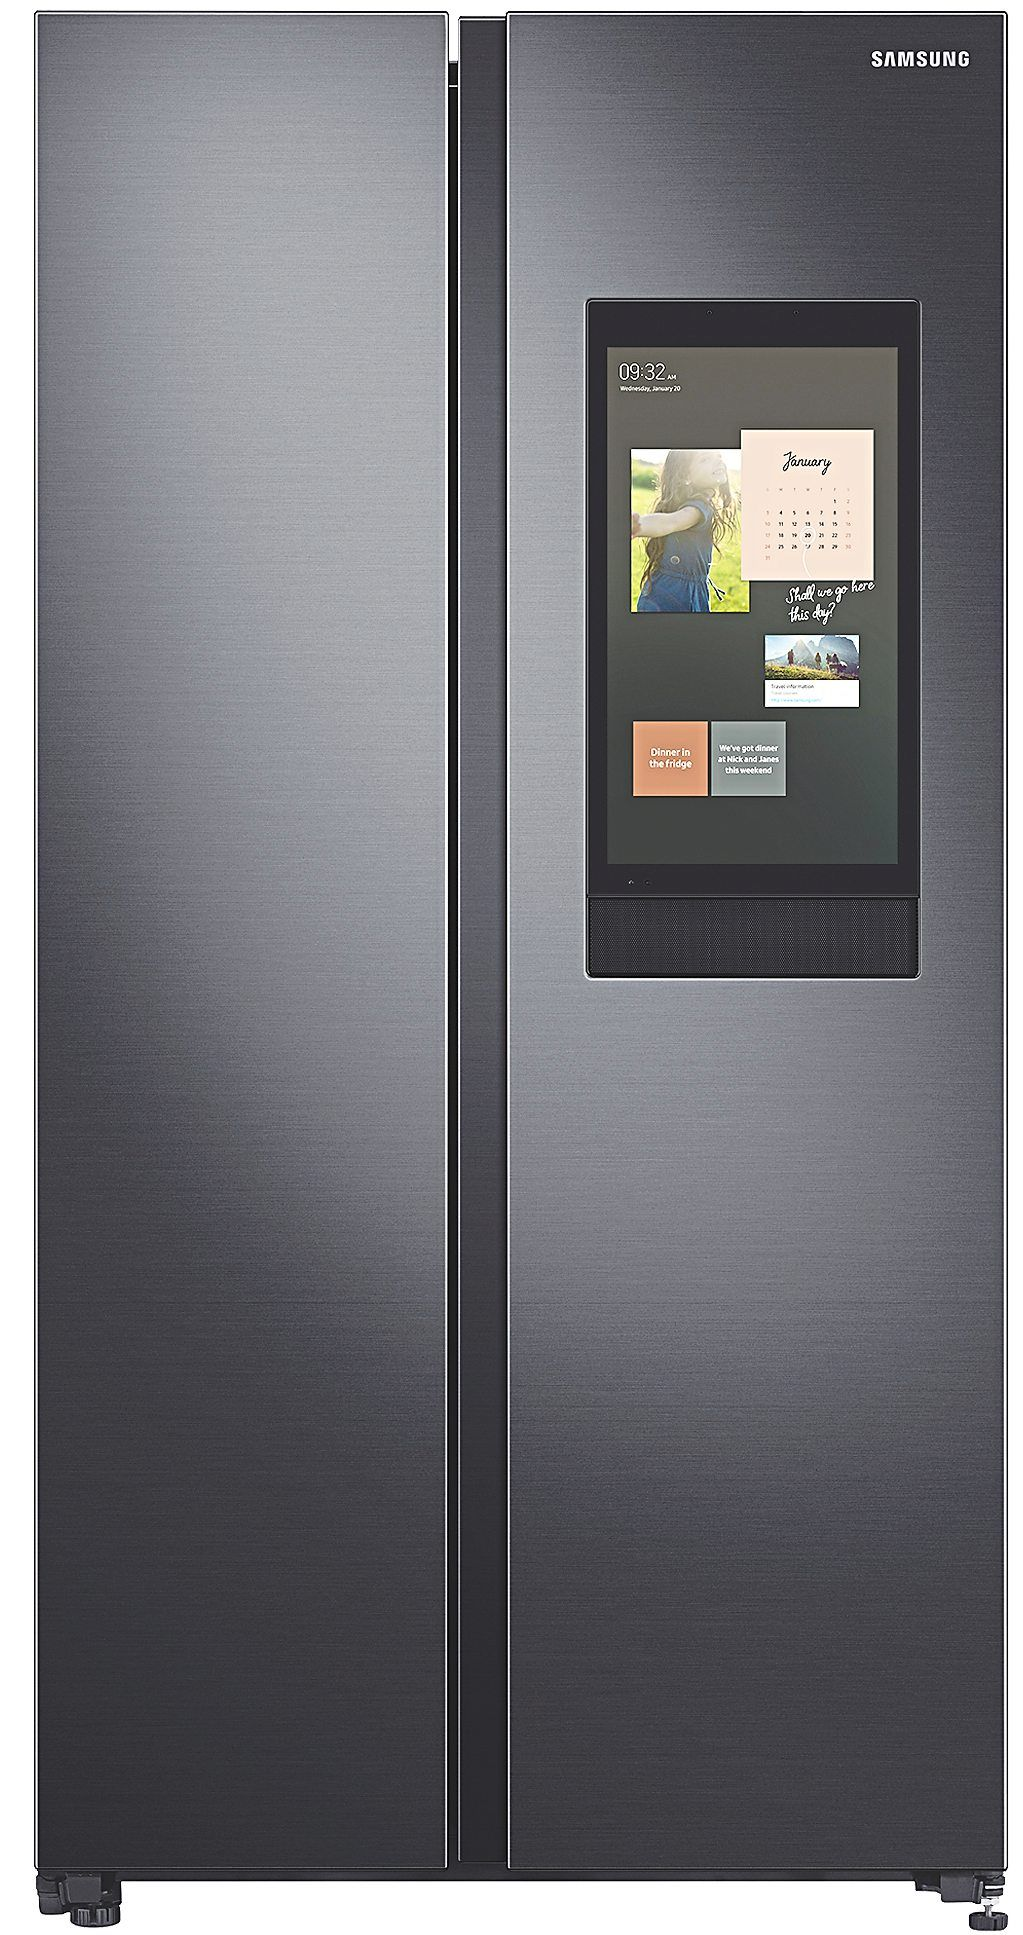 Shoppers can enjoy up to 54% off on appliances.